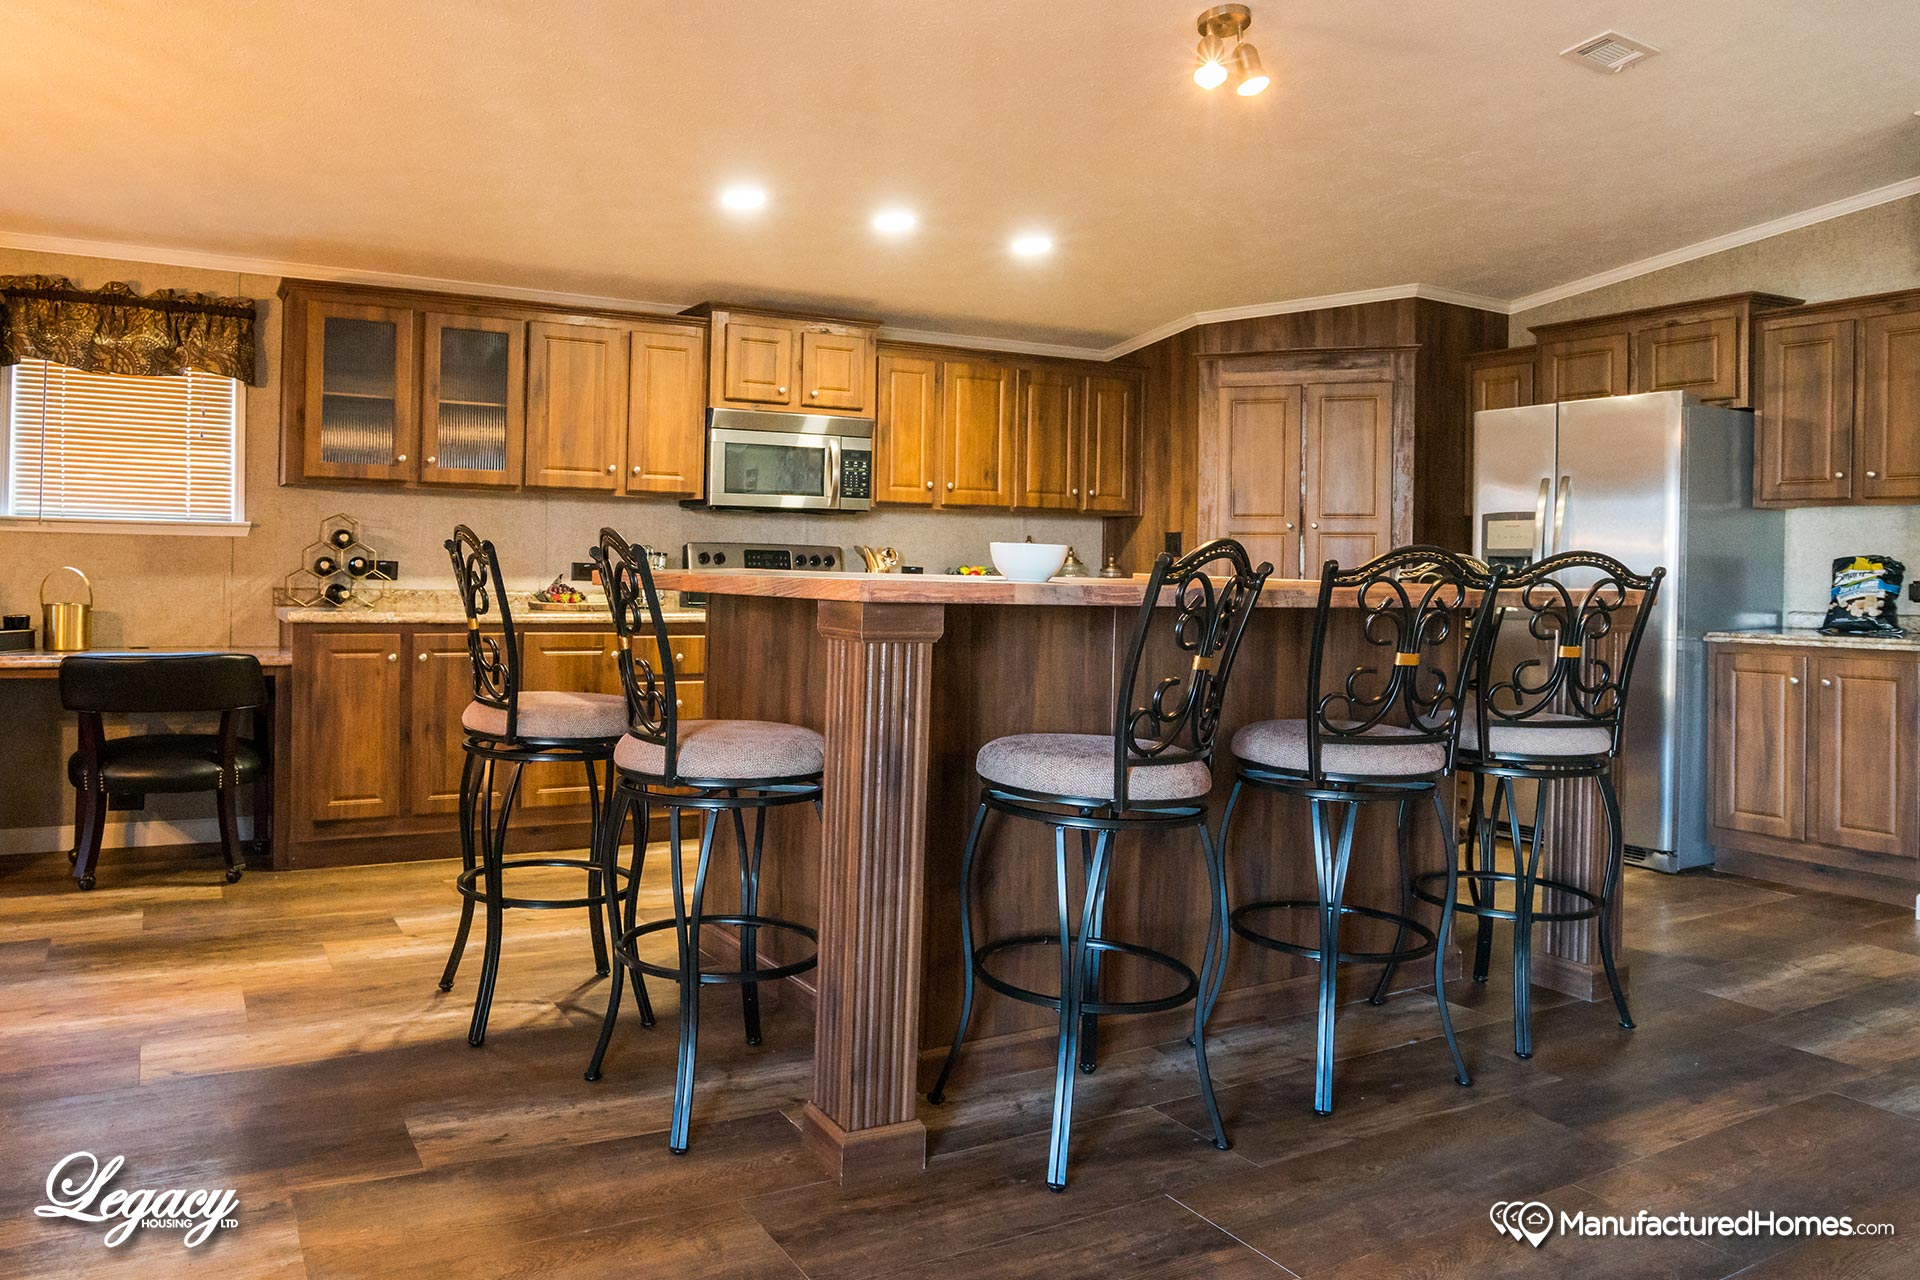 Heritage / 3264-32AP - Kitchen